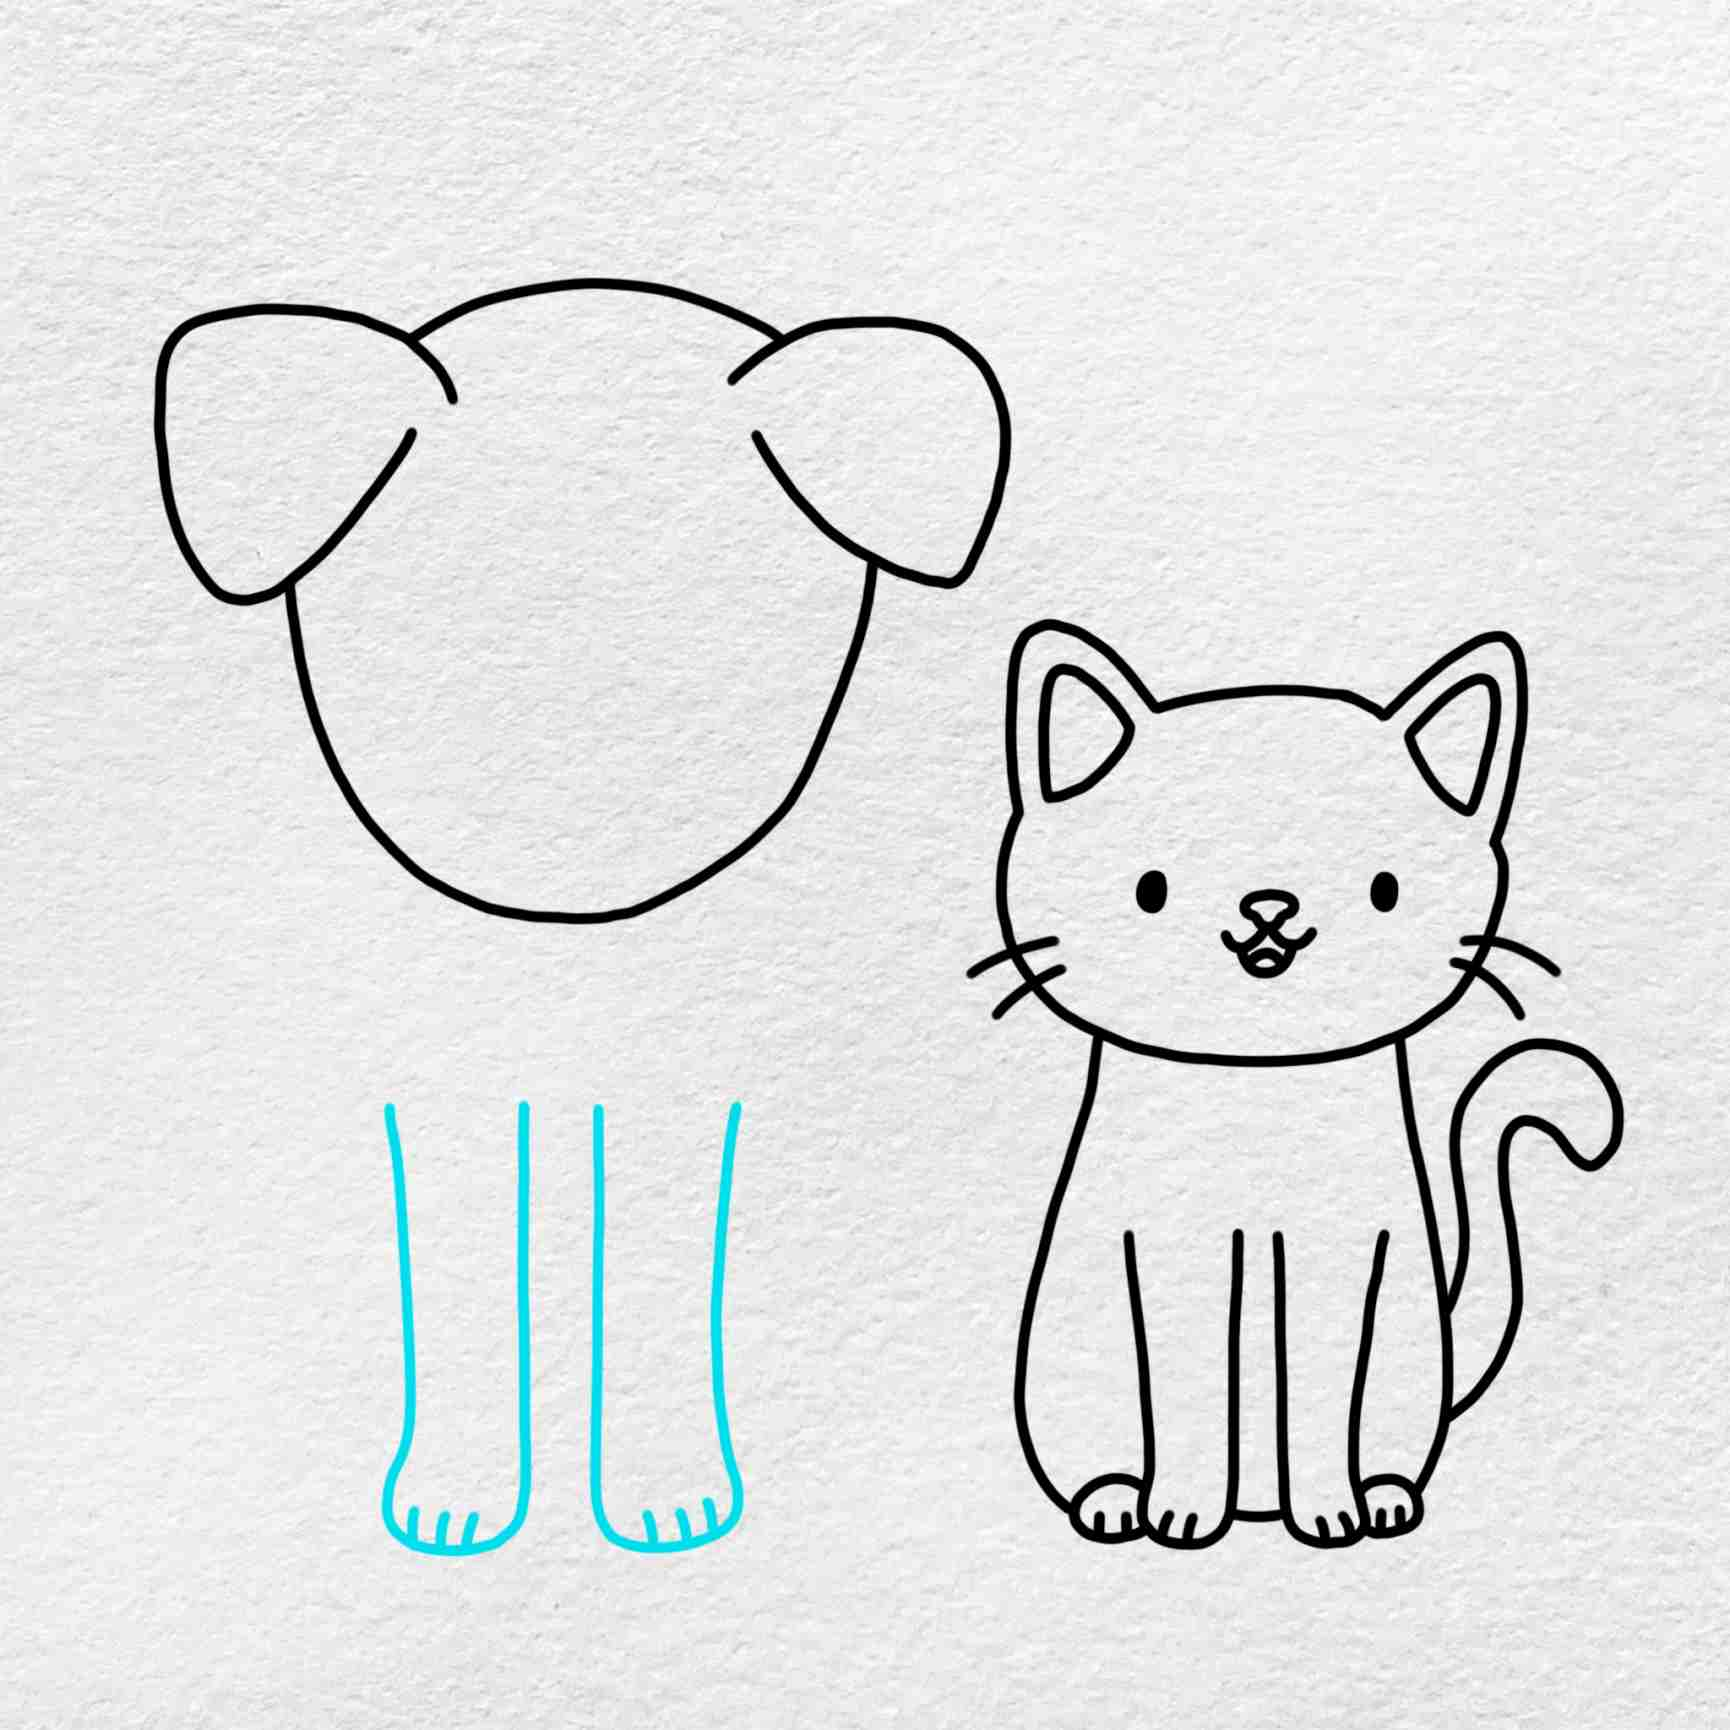 Cat And Dog Drawing: Step 6